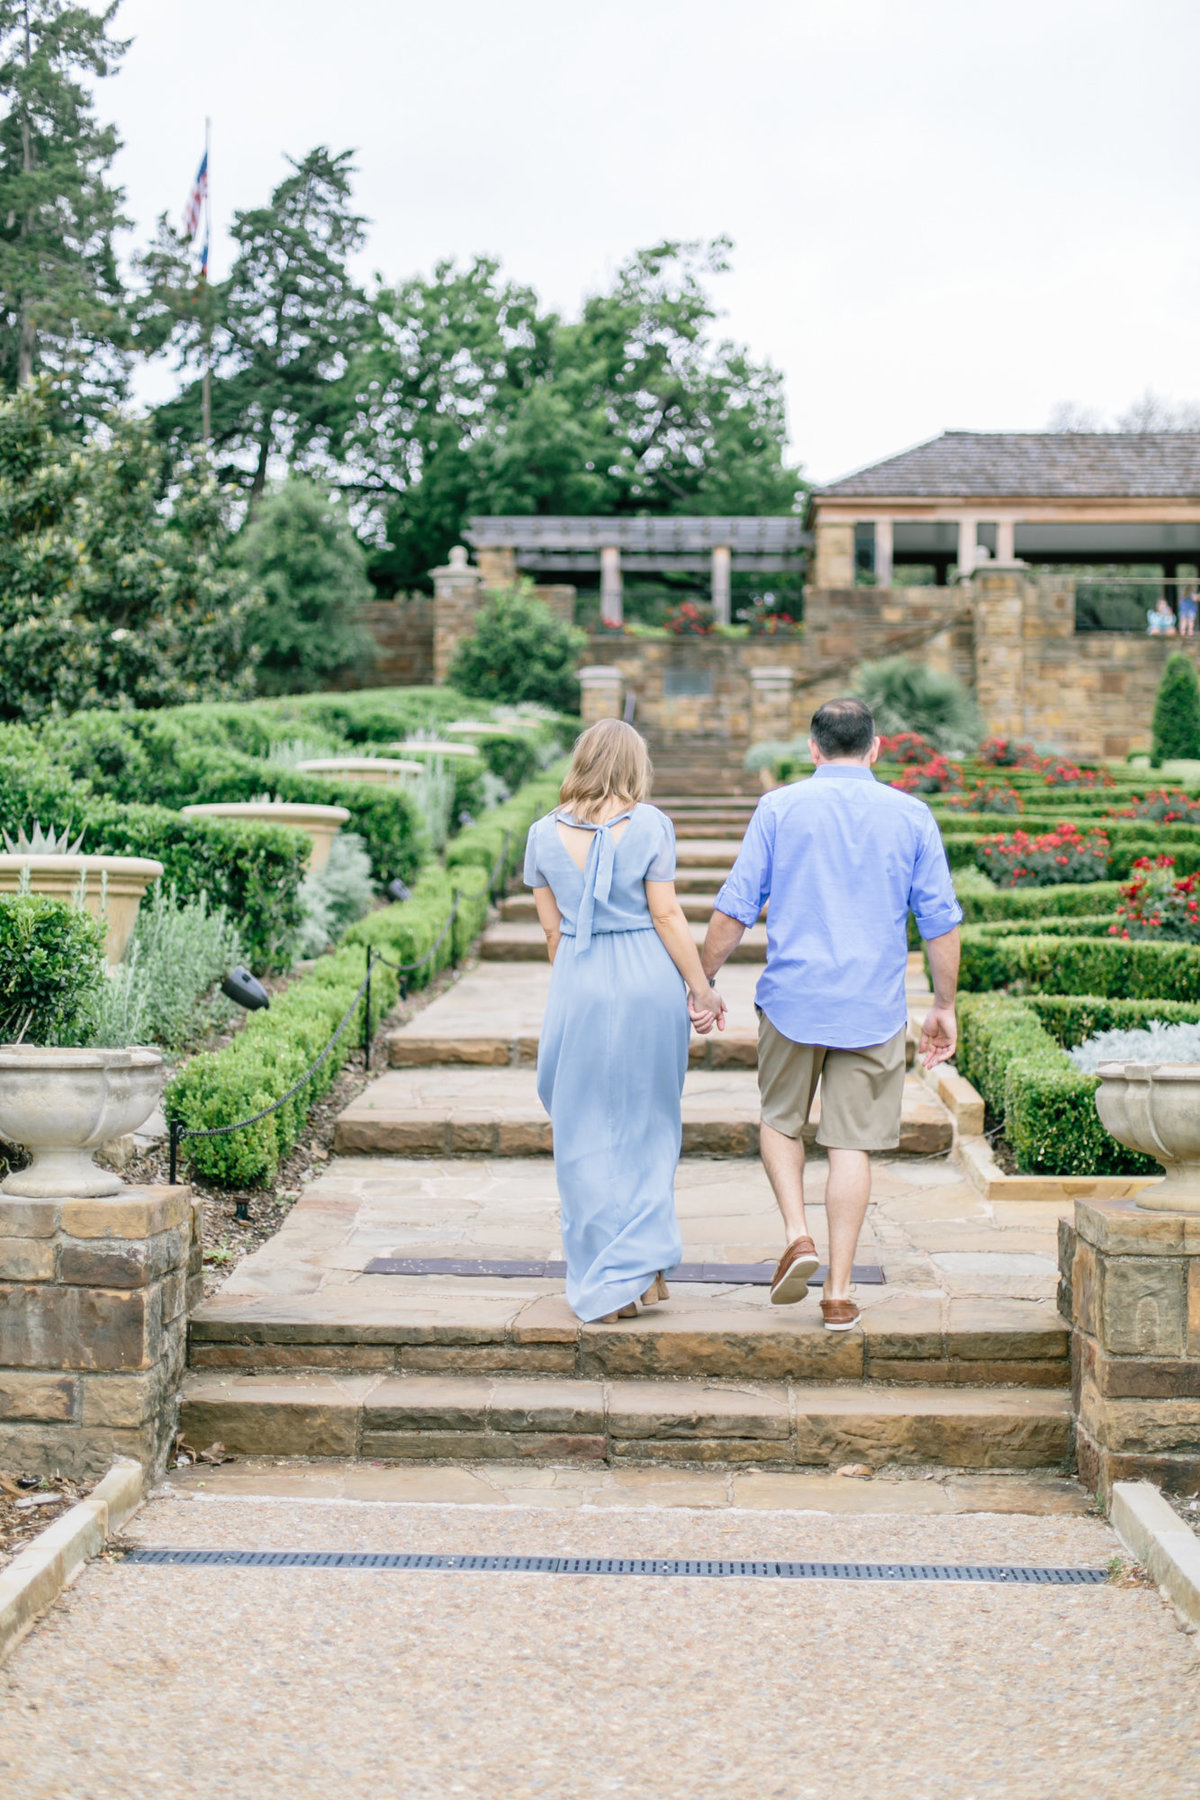 Fort-Worth-Botanical-Graden-Engagement-by-Dallas-Wedding-Photogrpher-Julia-Sharapova-32